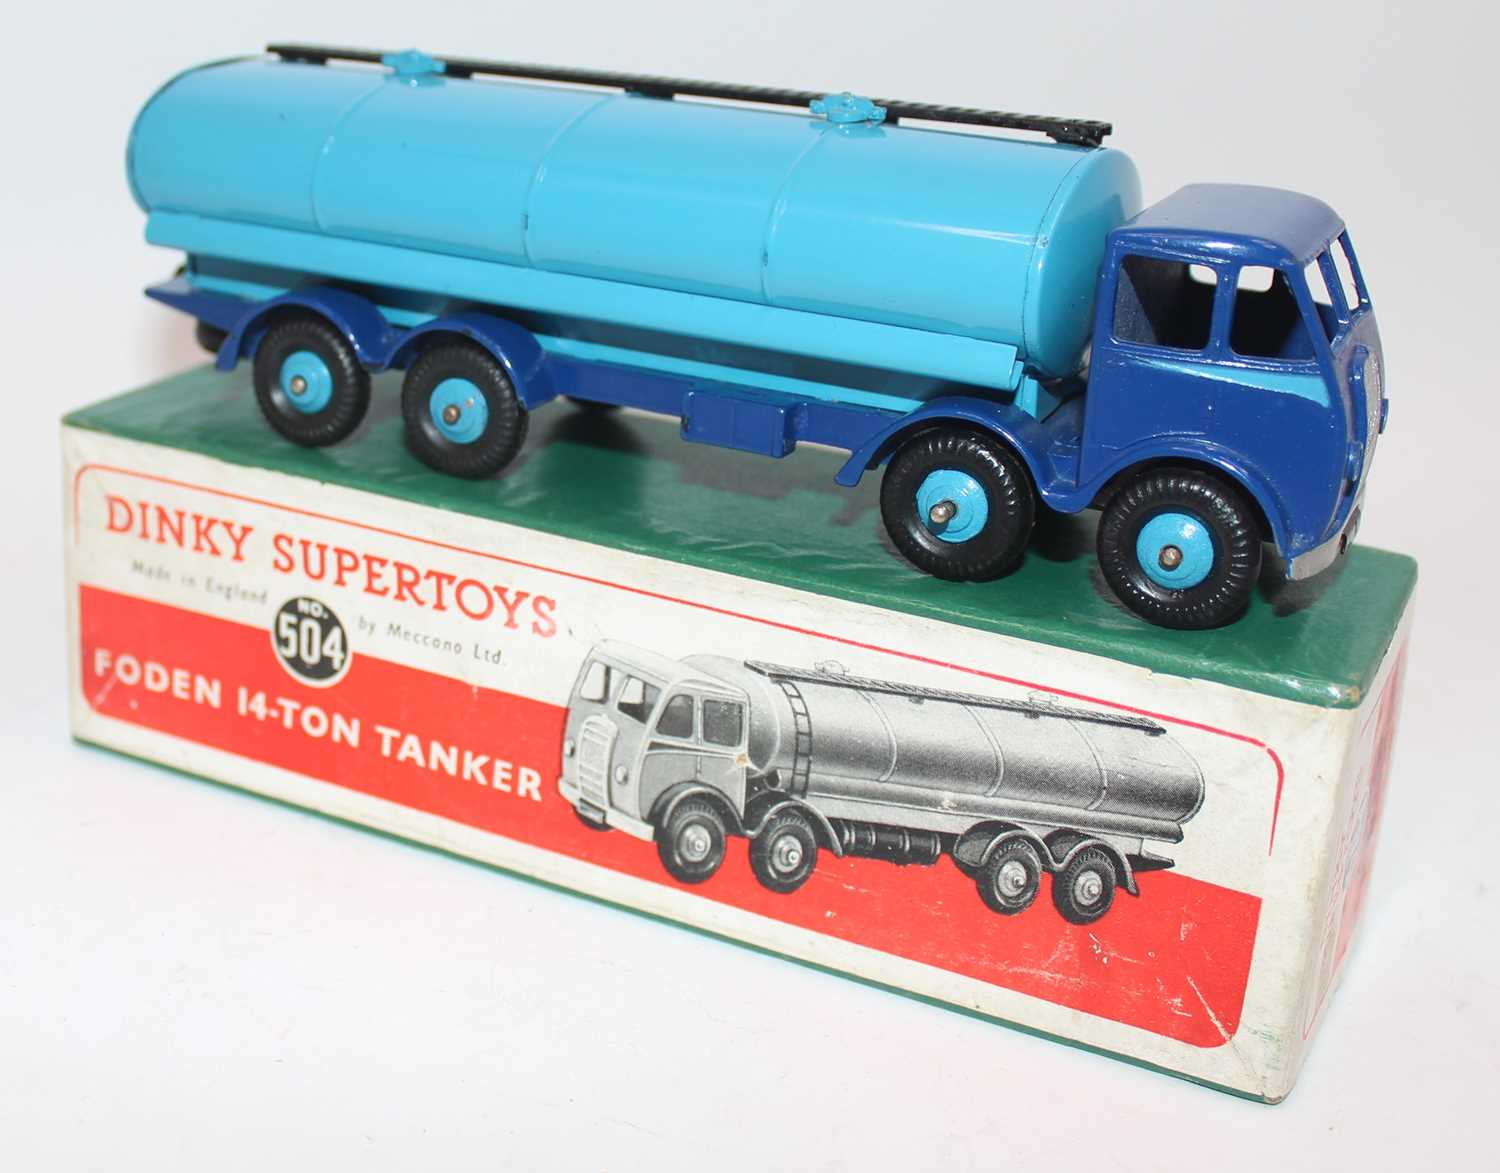 Dinky Toys, No.504 Foden 14-Ton Tanker, dark blue chassis and cab, light blue flash with light - Image 2 of 2